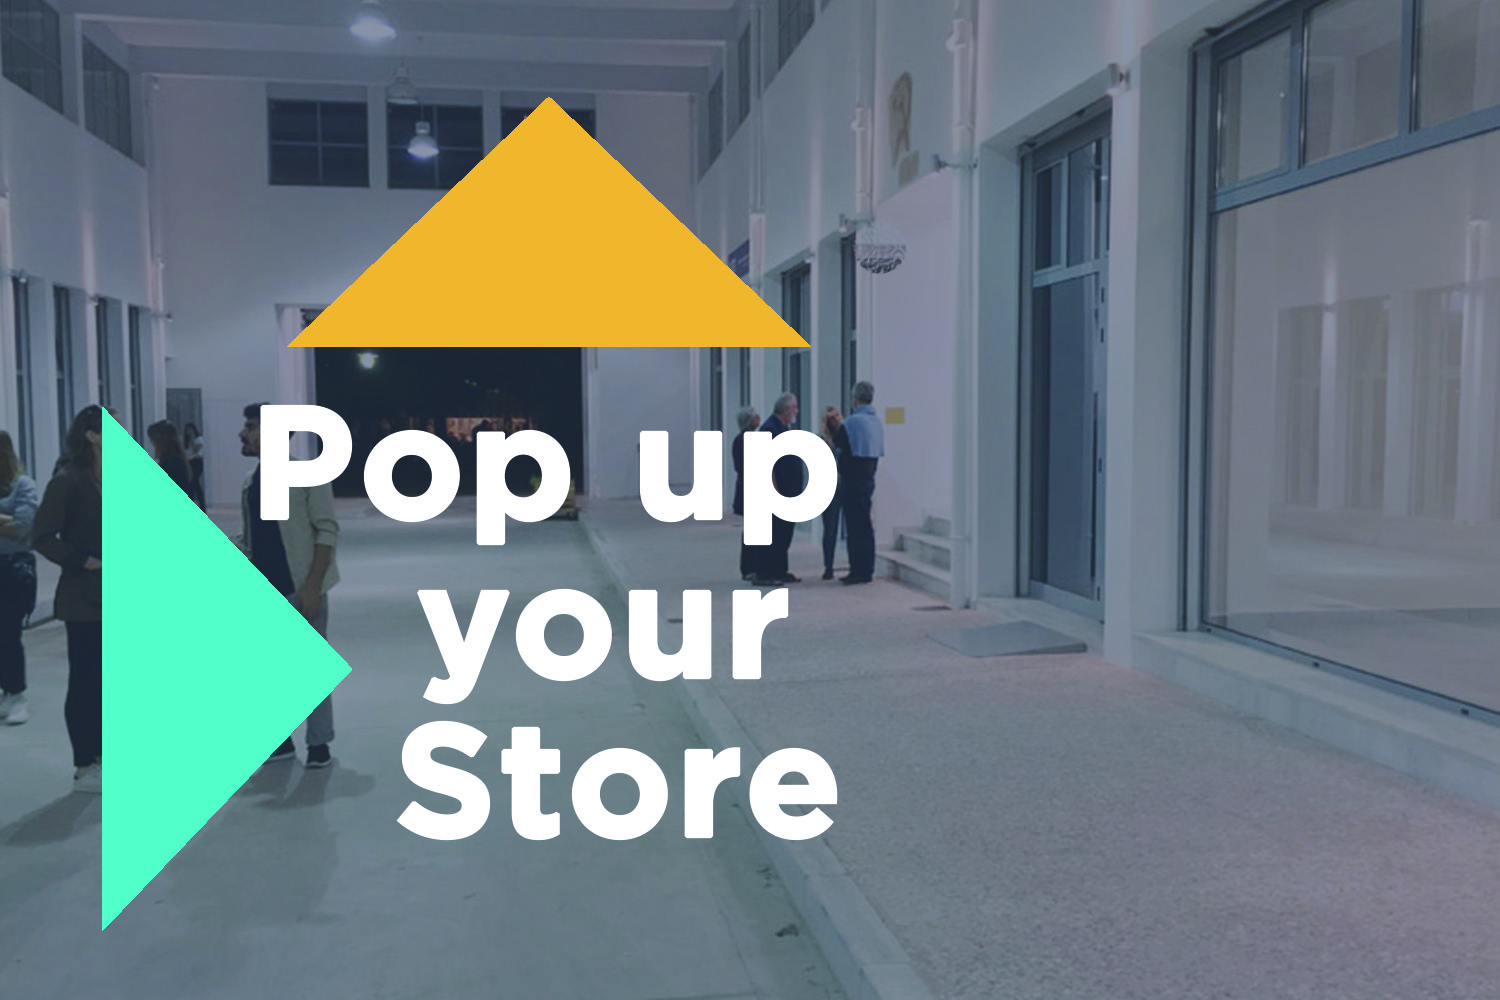 Pop up your store